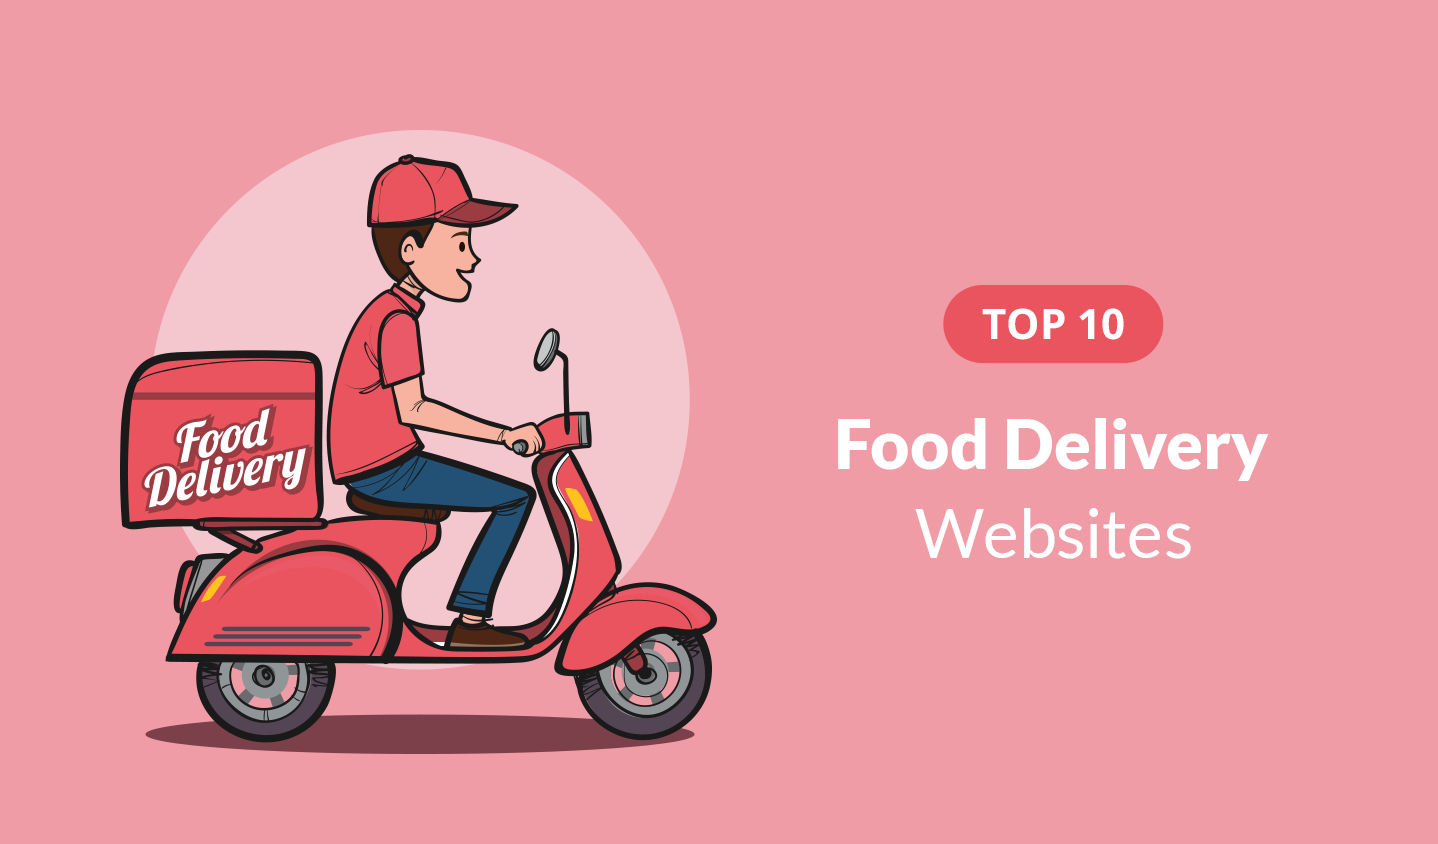 Top 10 Online Food delivery websites